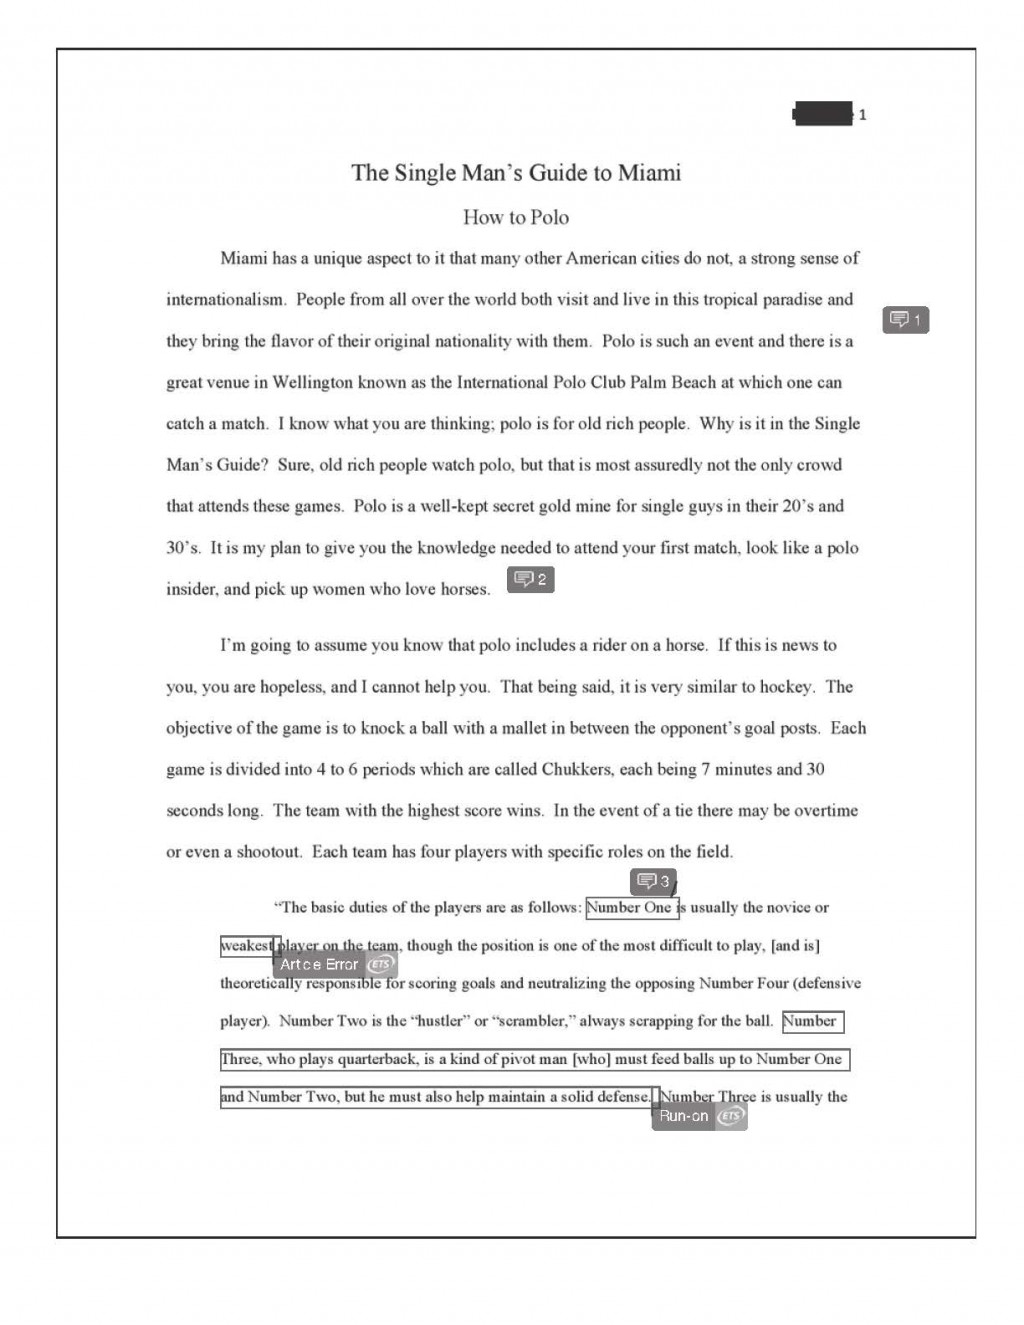 006 Informative Essay Final How To Polo Redacted Page 2 Example Outstanding Definition Large